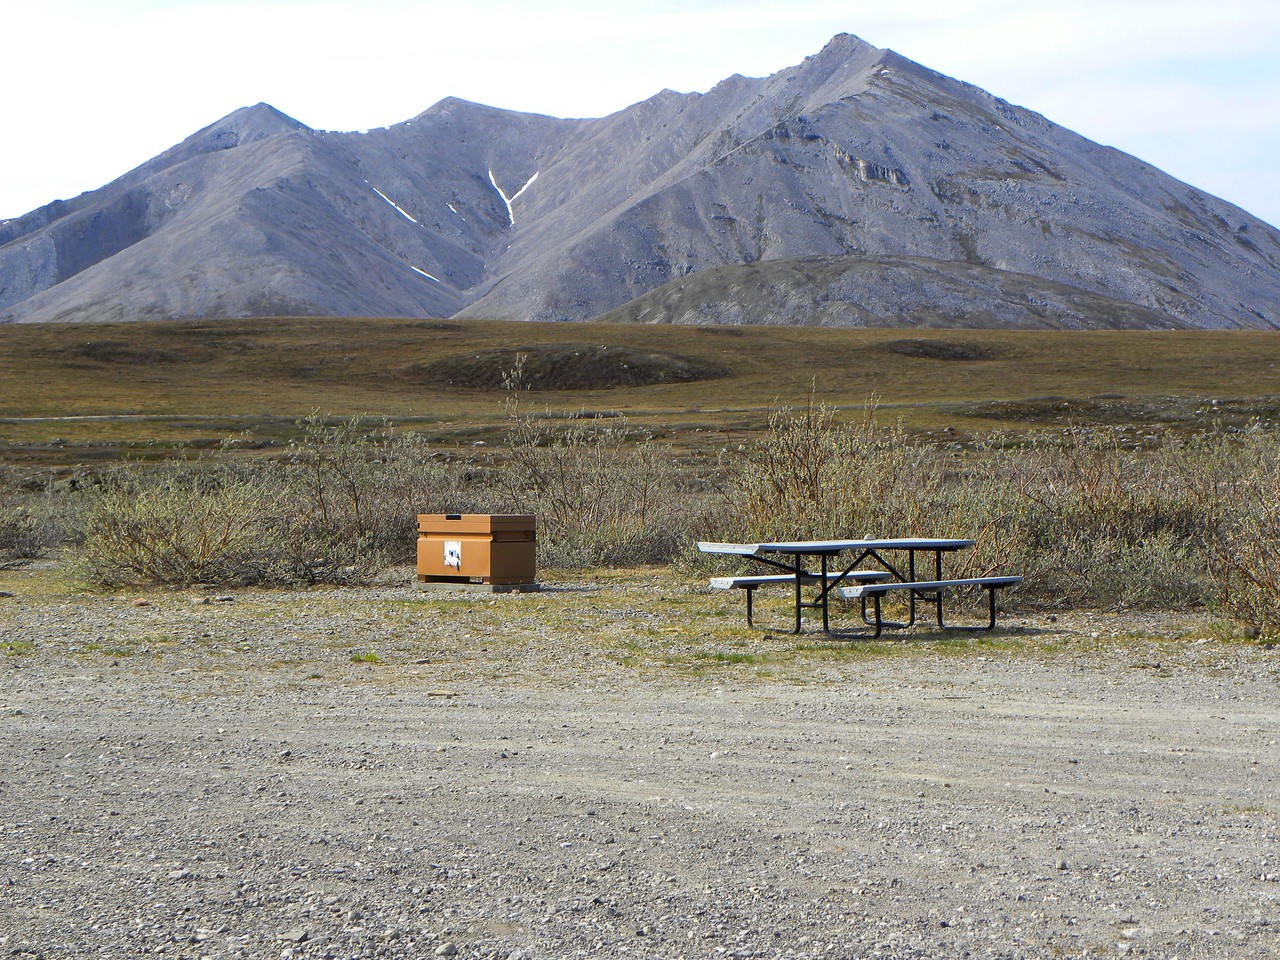 One of the picnic tables and the food locker.